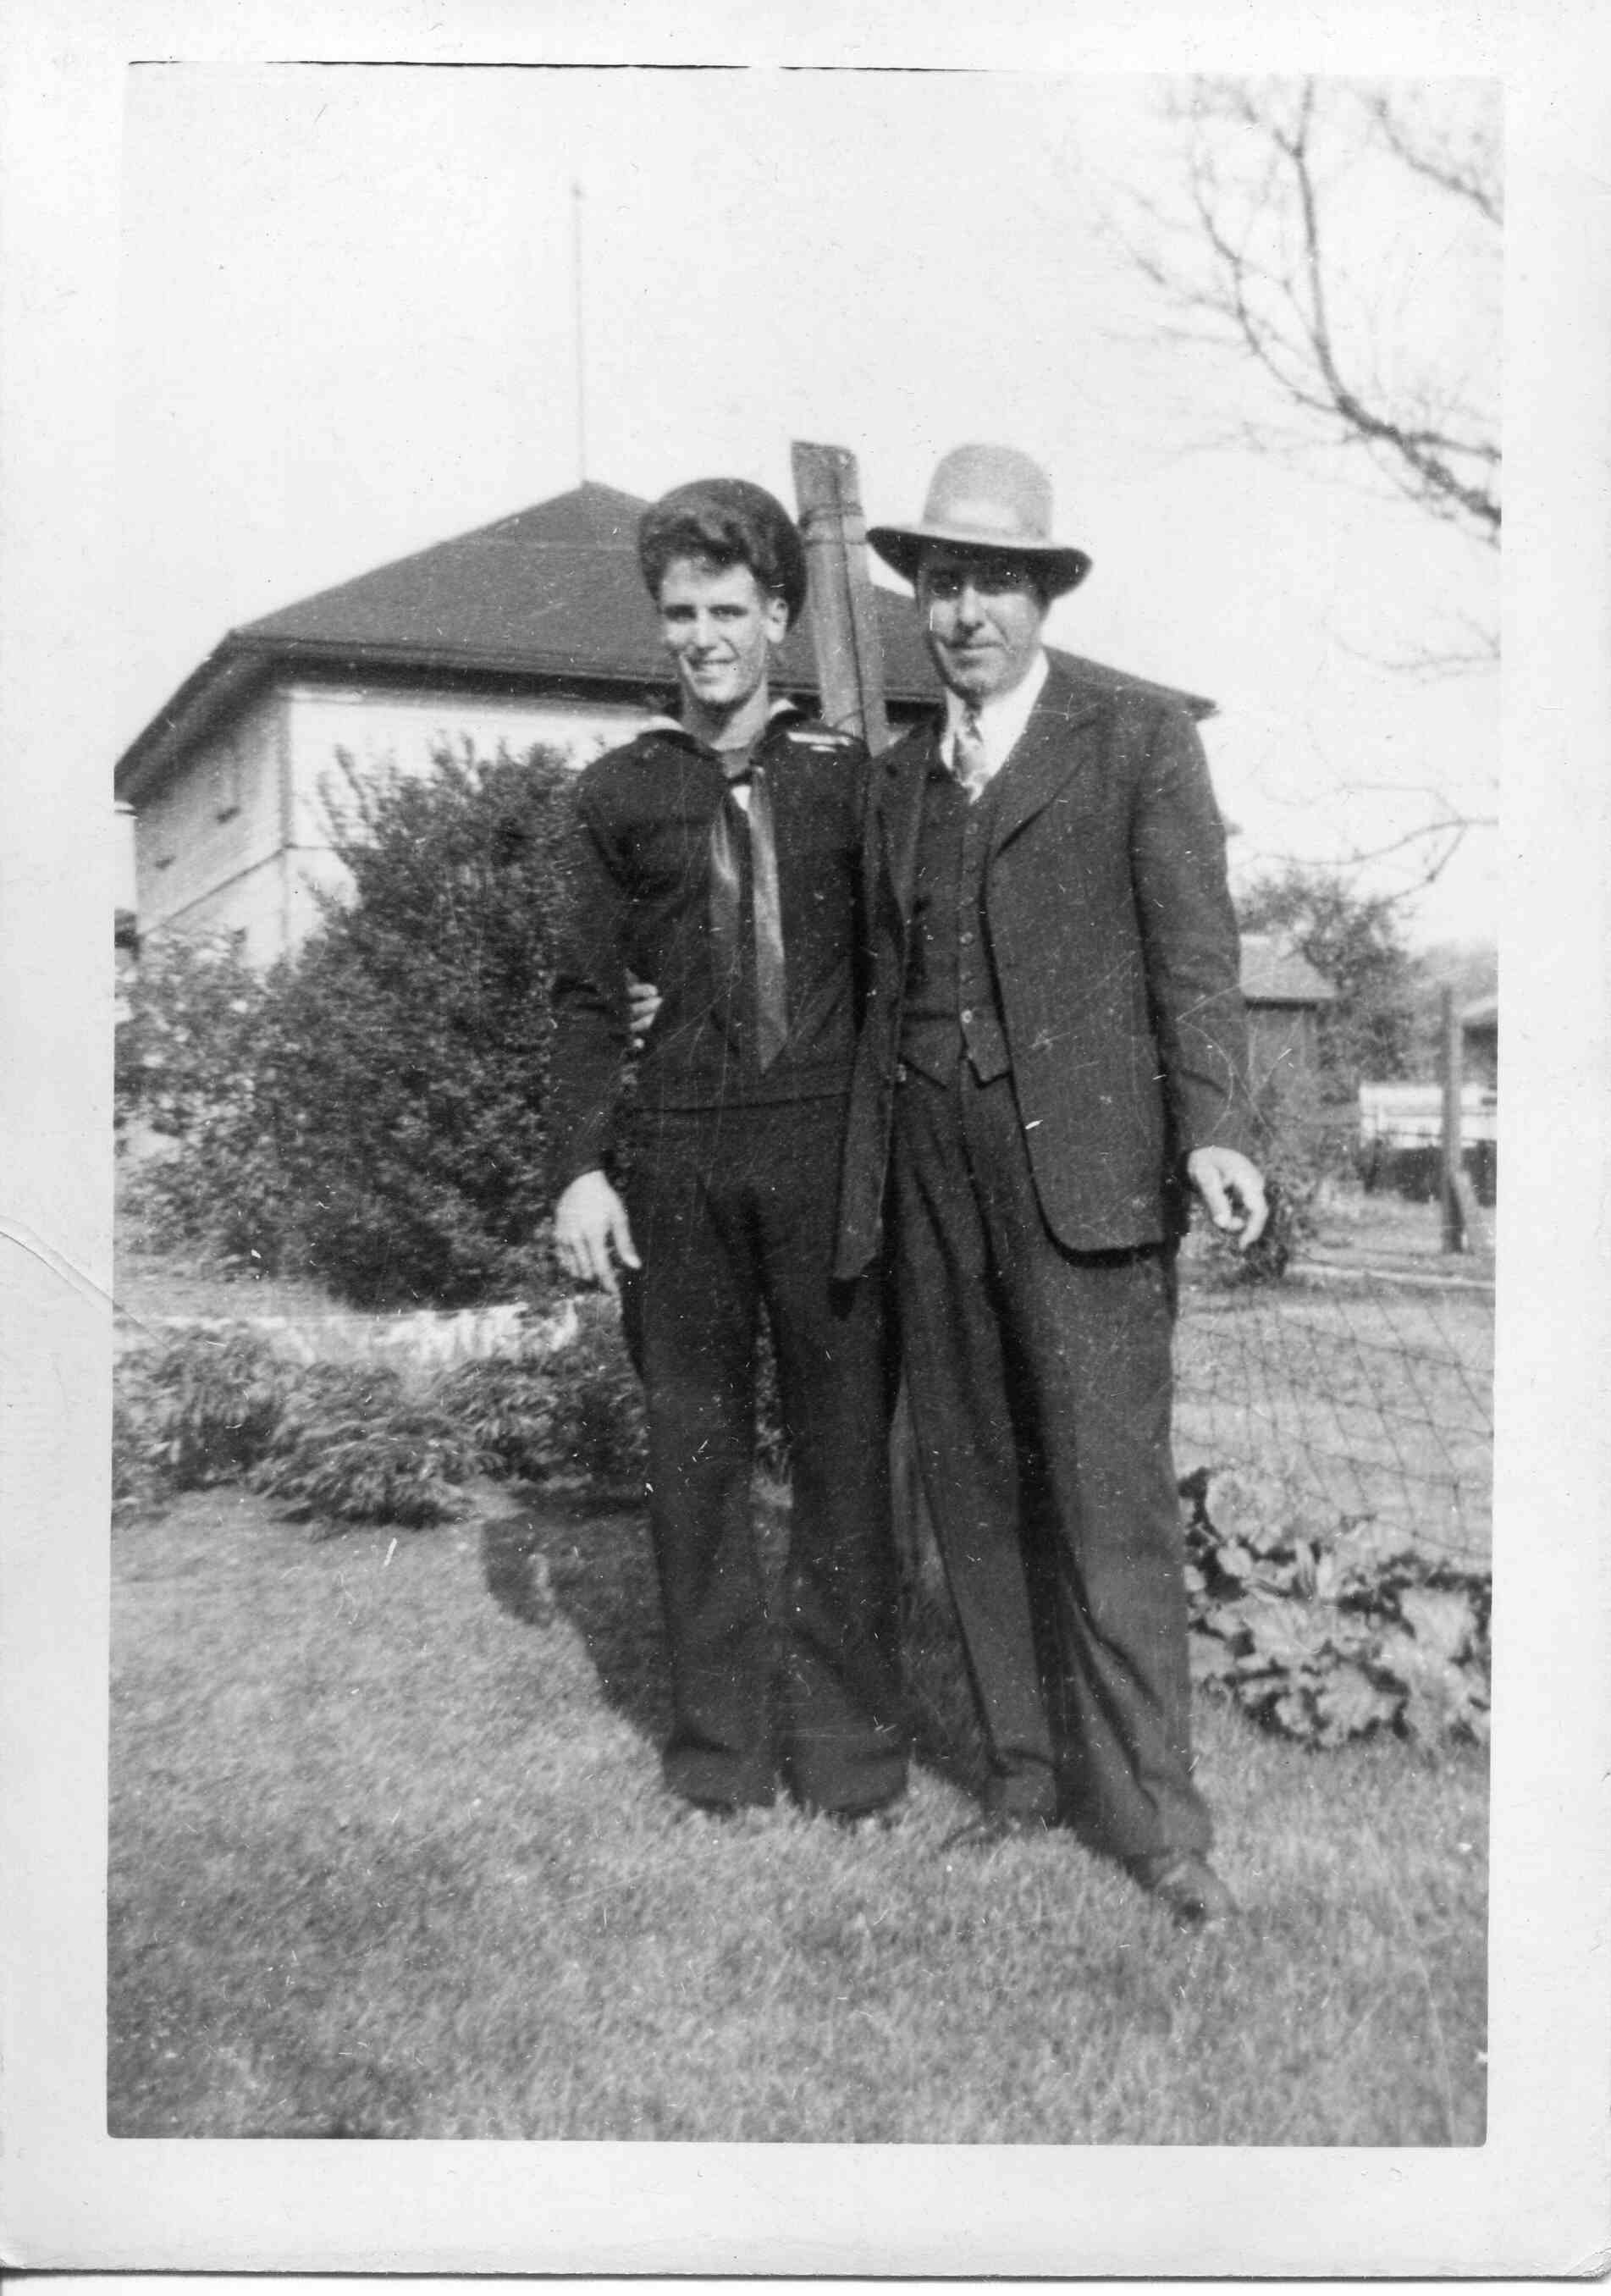 Mertz, Robert A. On Leave 1945